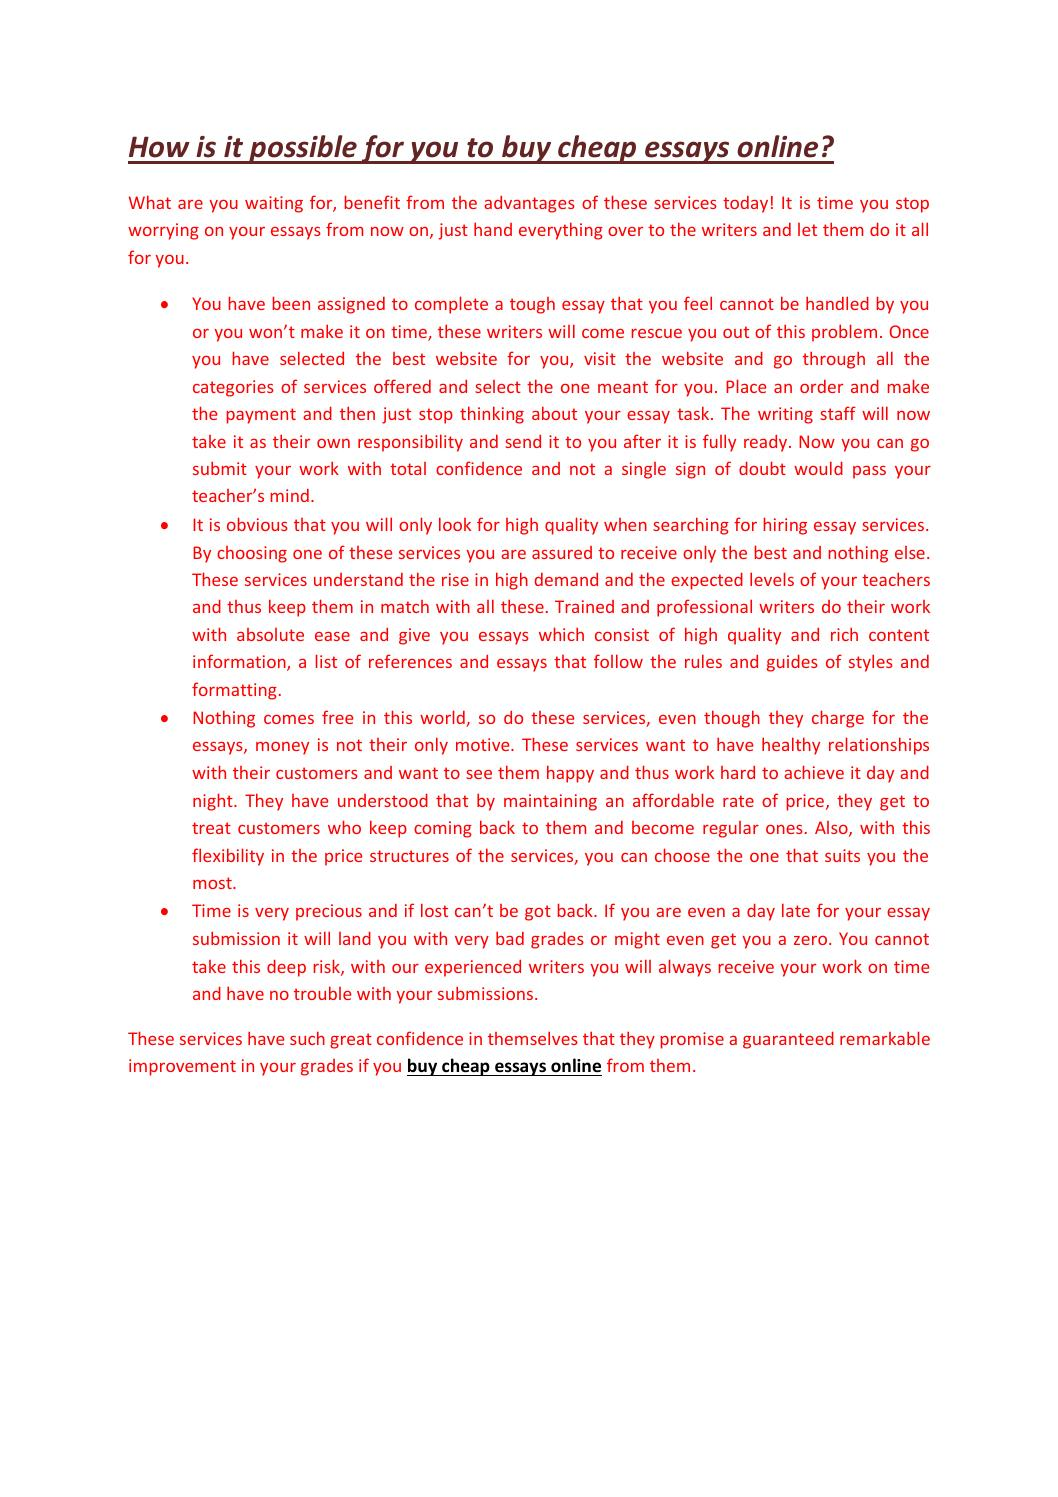 topics for creative writing essays 2 creative writing essays creative writing - 518 words as i opened my eyes in the morning i remember catching a glimpse of the vivid being thrown and the sound of.